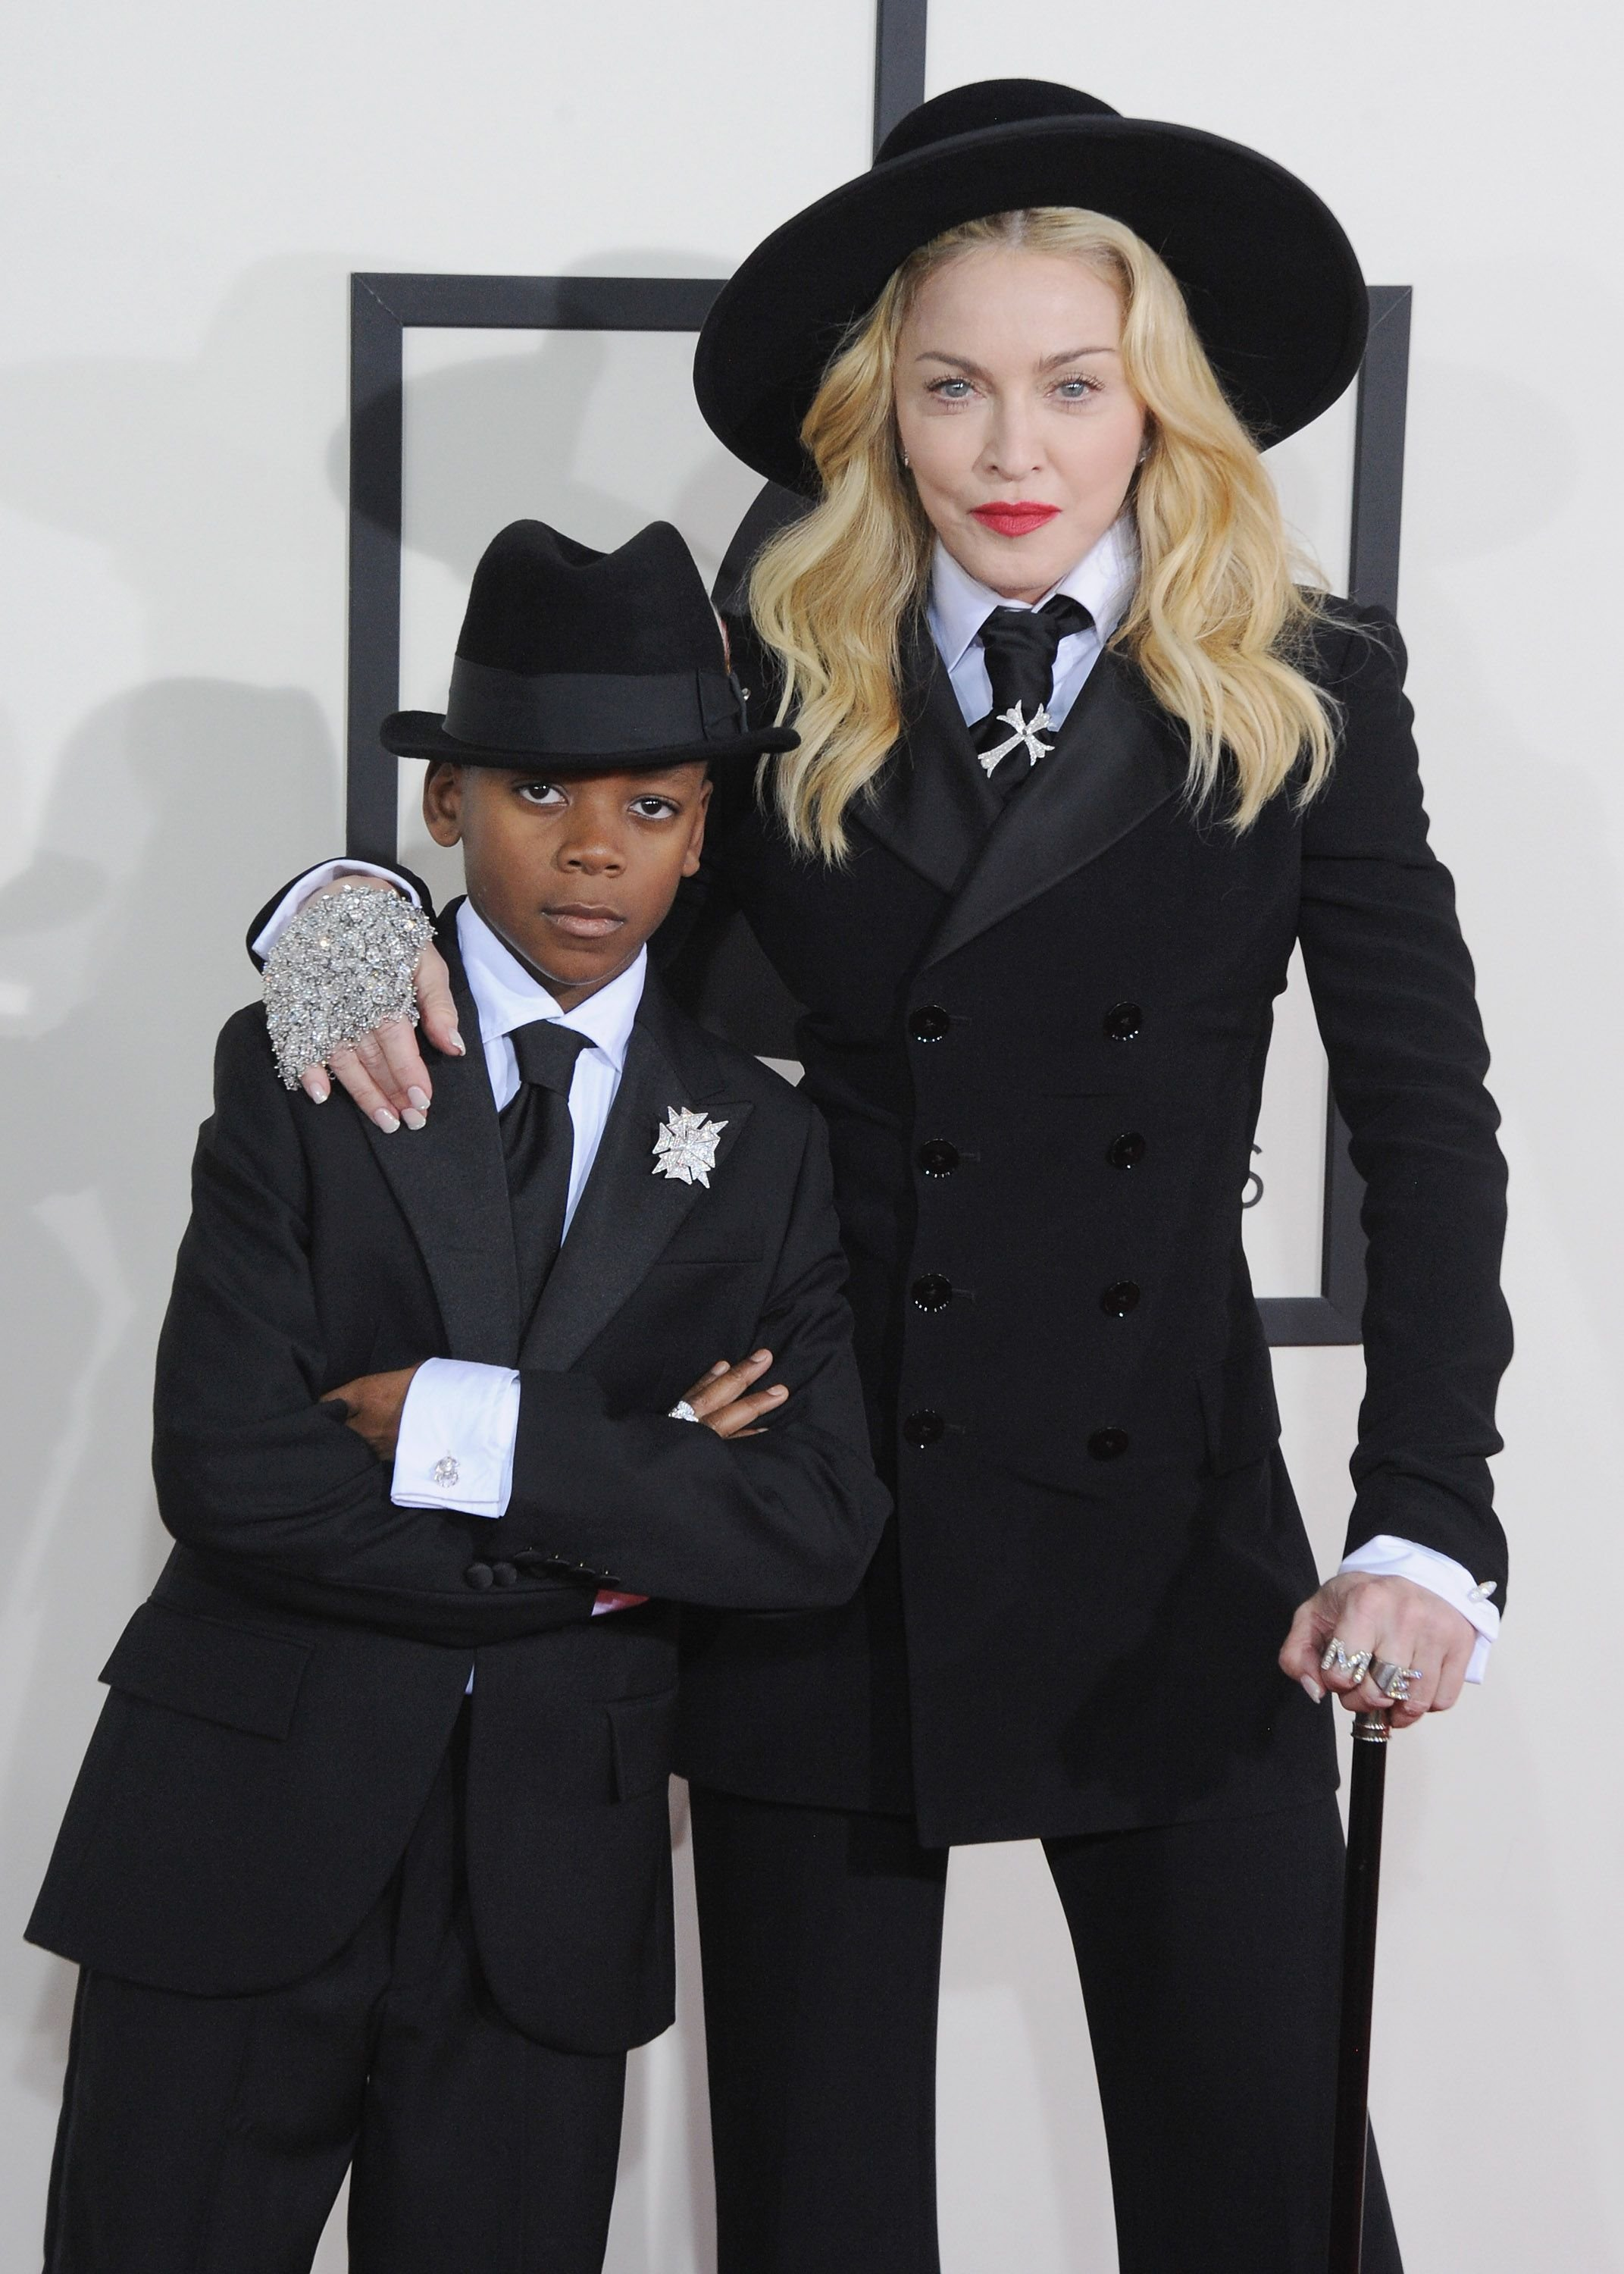 Madonna and her son David Banda Mwale Ciccone Ritchie at the 56th Grammy Awards at Staples Center on January 26, 2014, in Los Angeles, California | Photo: Jon Kopaloff/FilmMagic/Getty Images